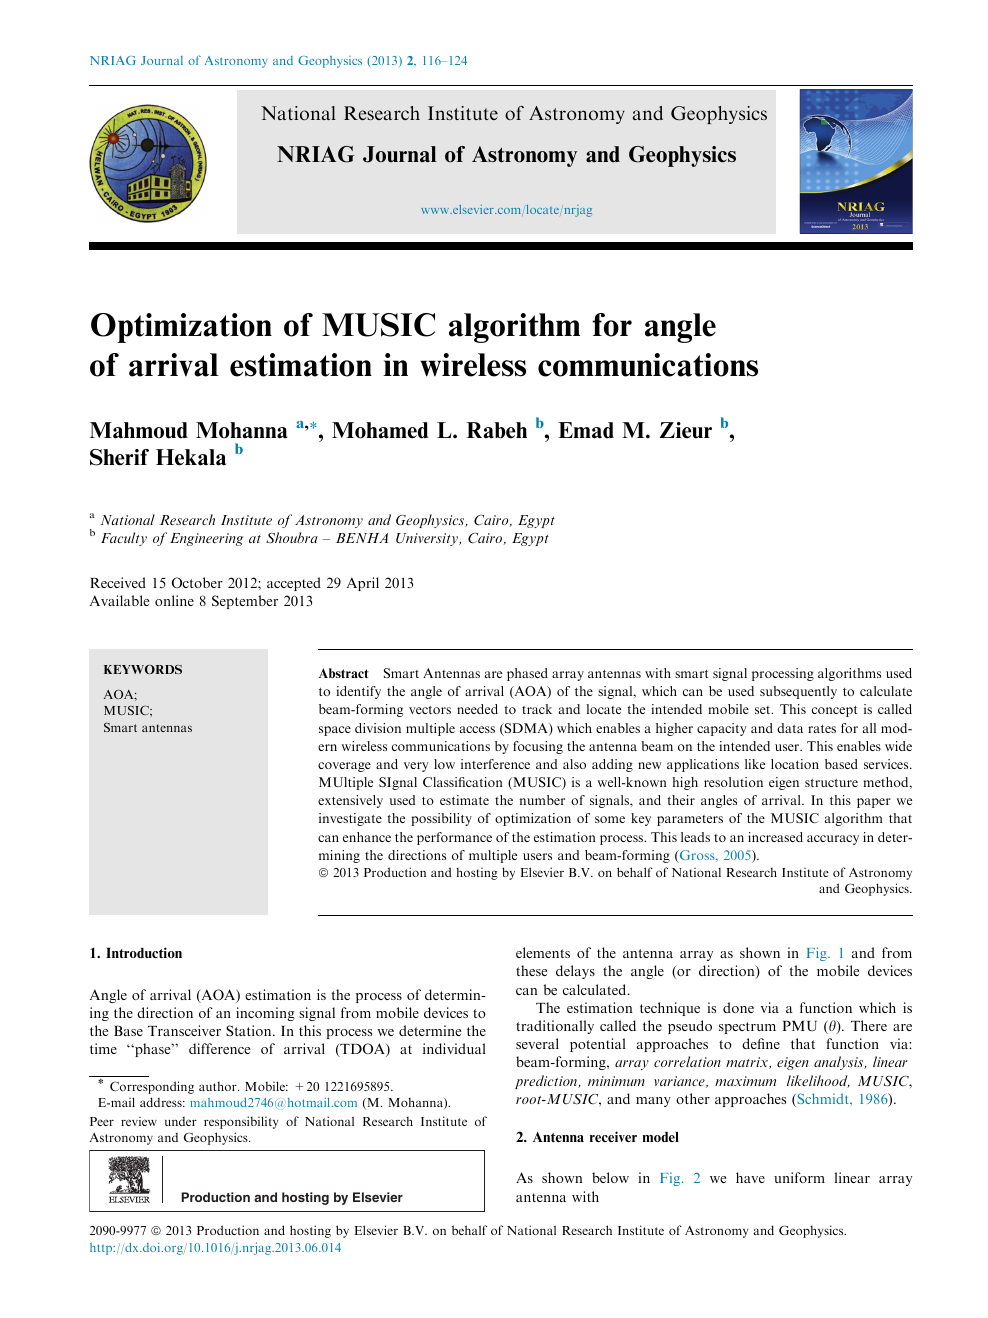 Optimization Of Music Algorithm For Angle Arrival Estimation In Smart Antennas Read Paper